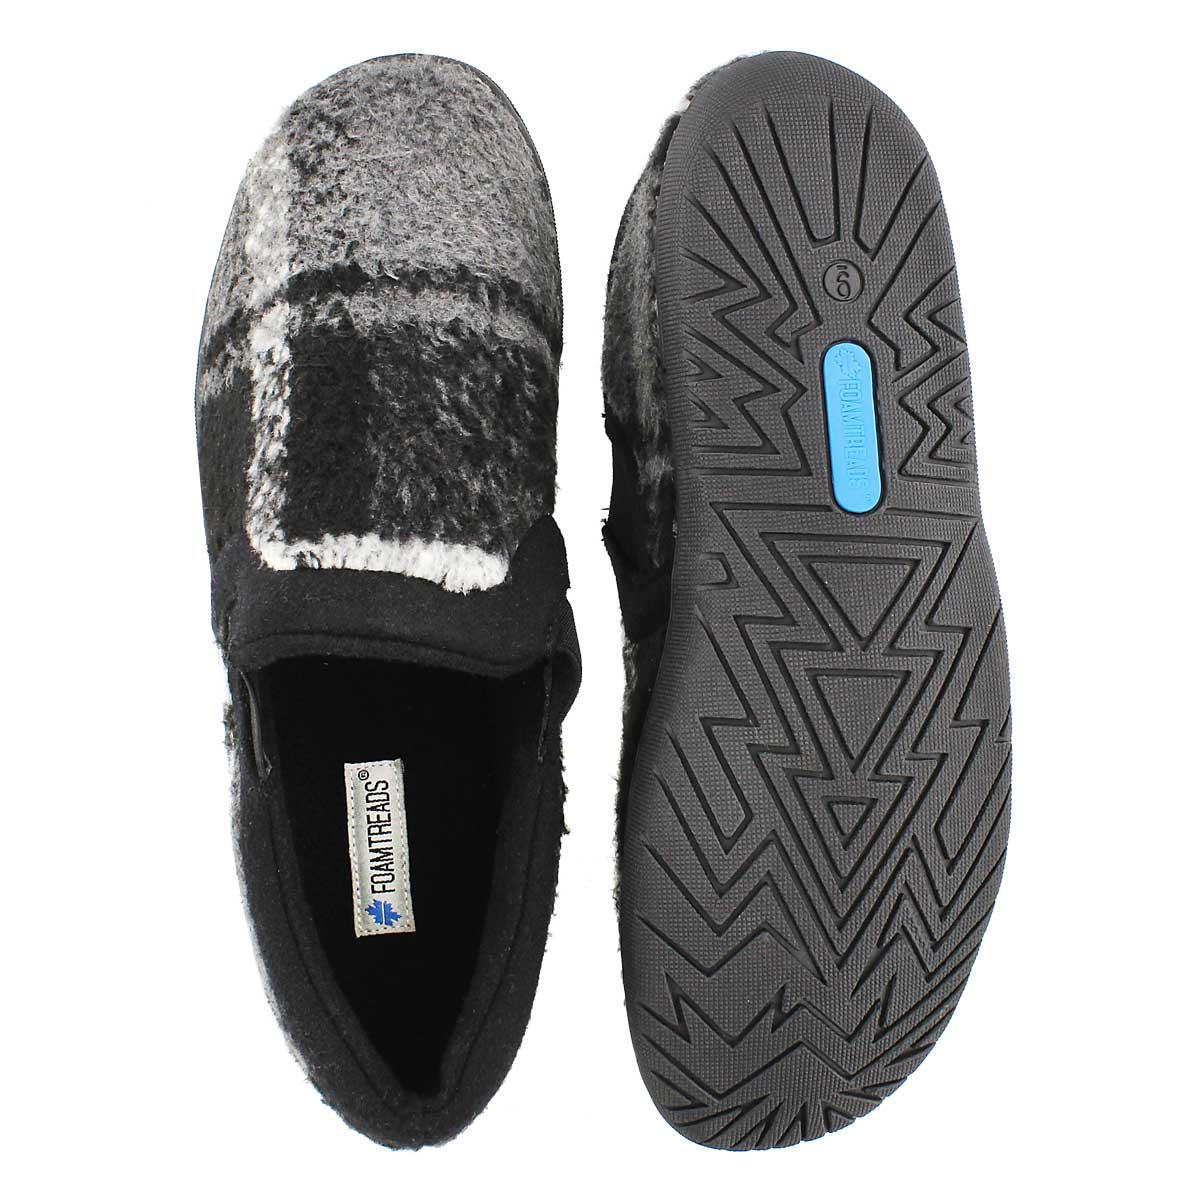 Mns Beaumont black closed back slipper